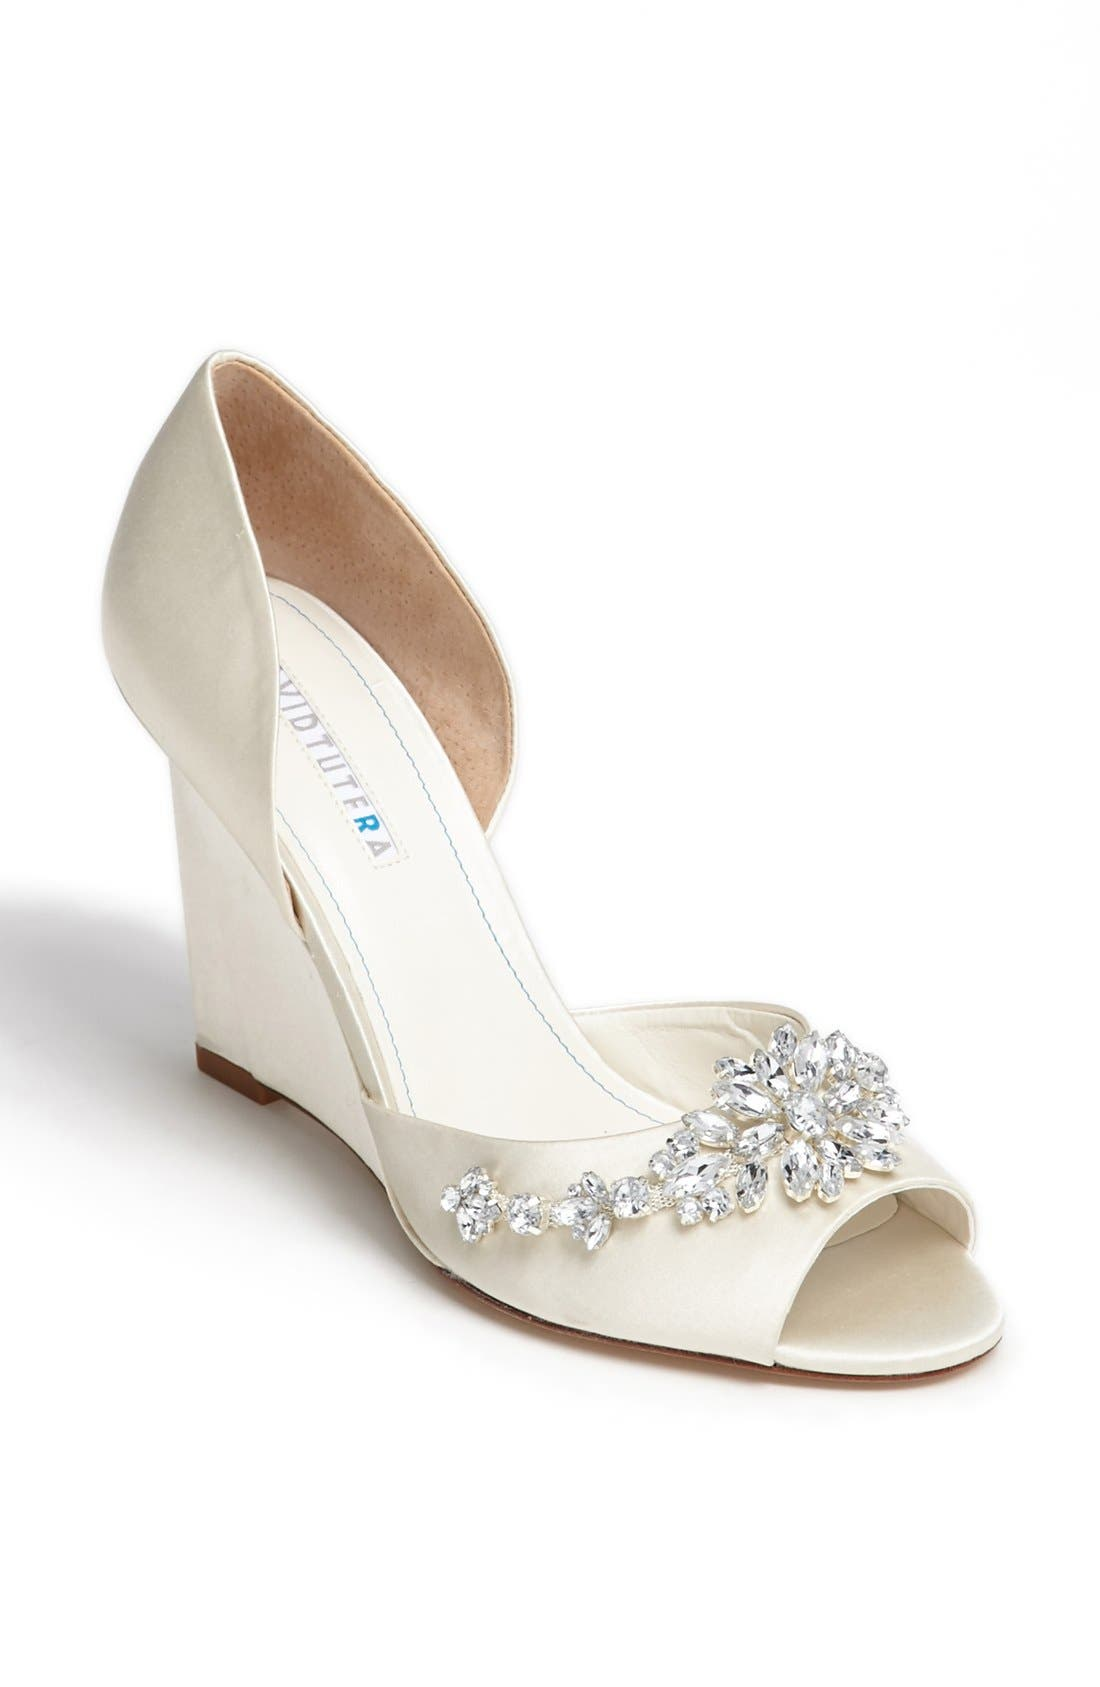 Main Image - David Tutera 'Winter' Wedge Sandal (Online Only)